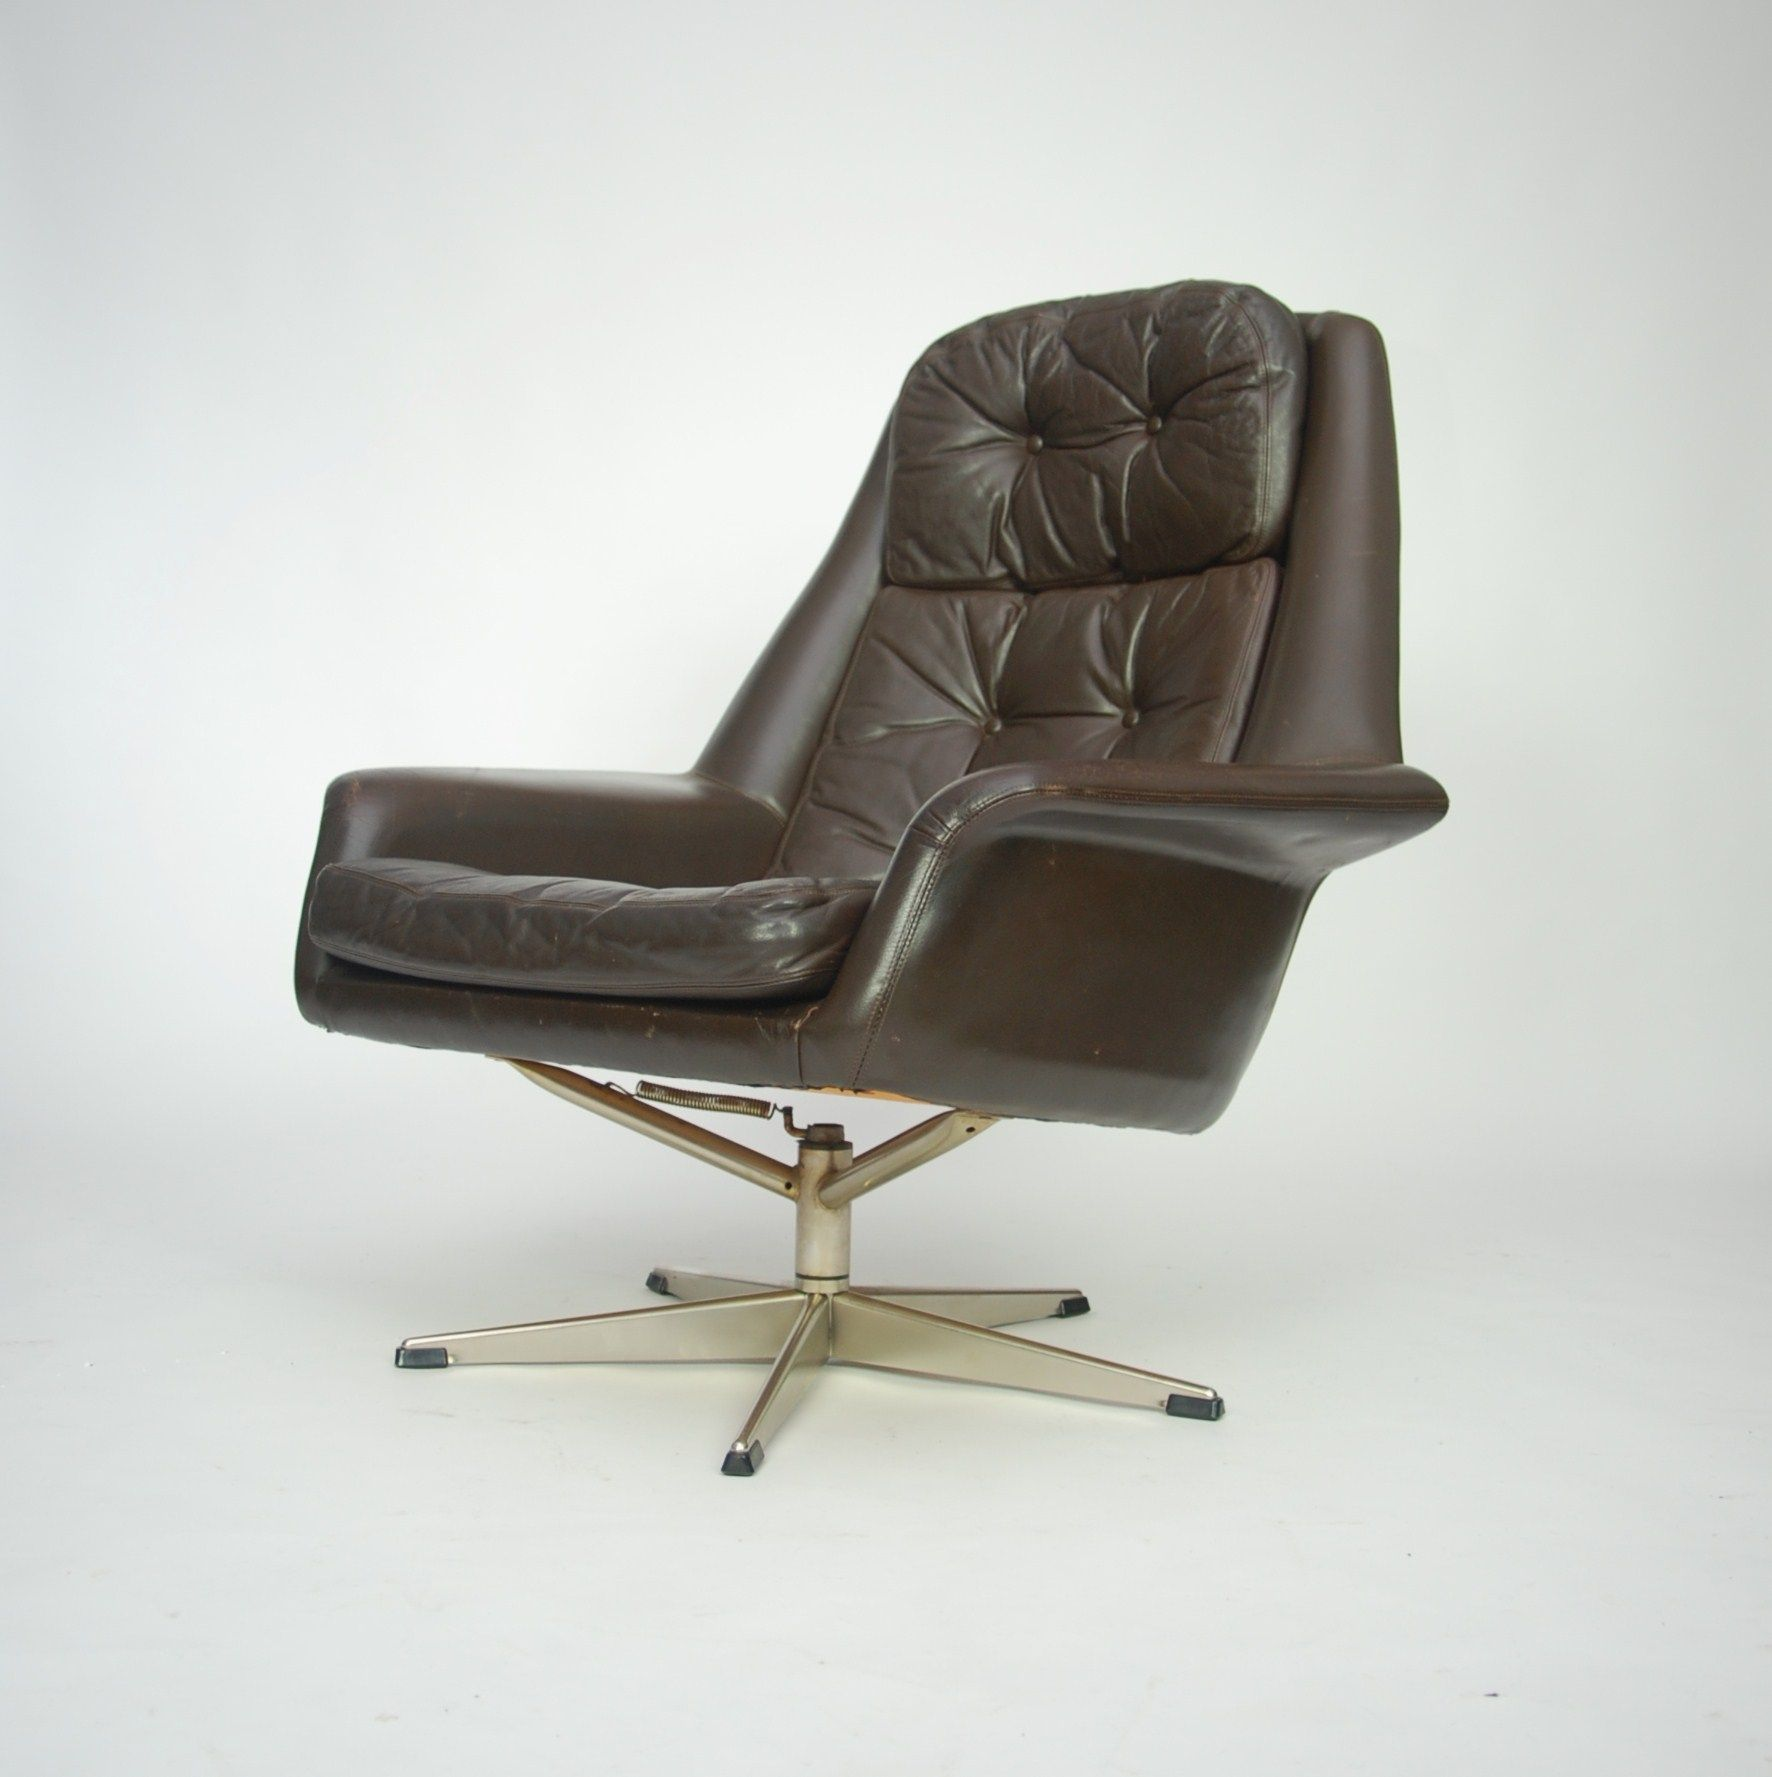 H W Klein Steel And Leather Swivel Lounge Chair For Bramin S